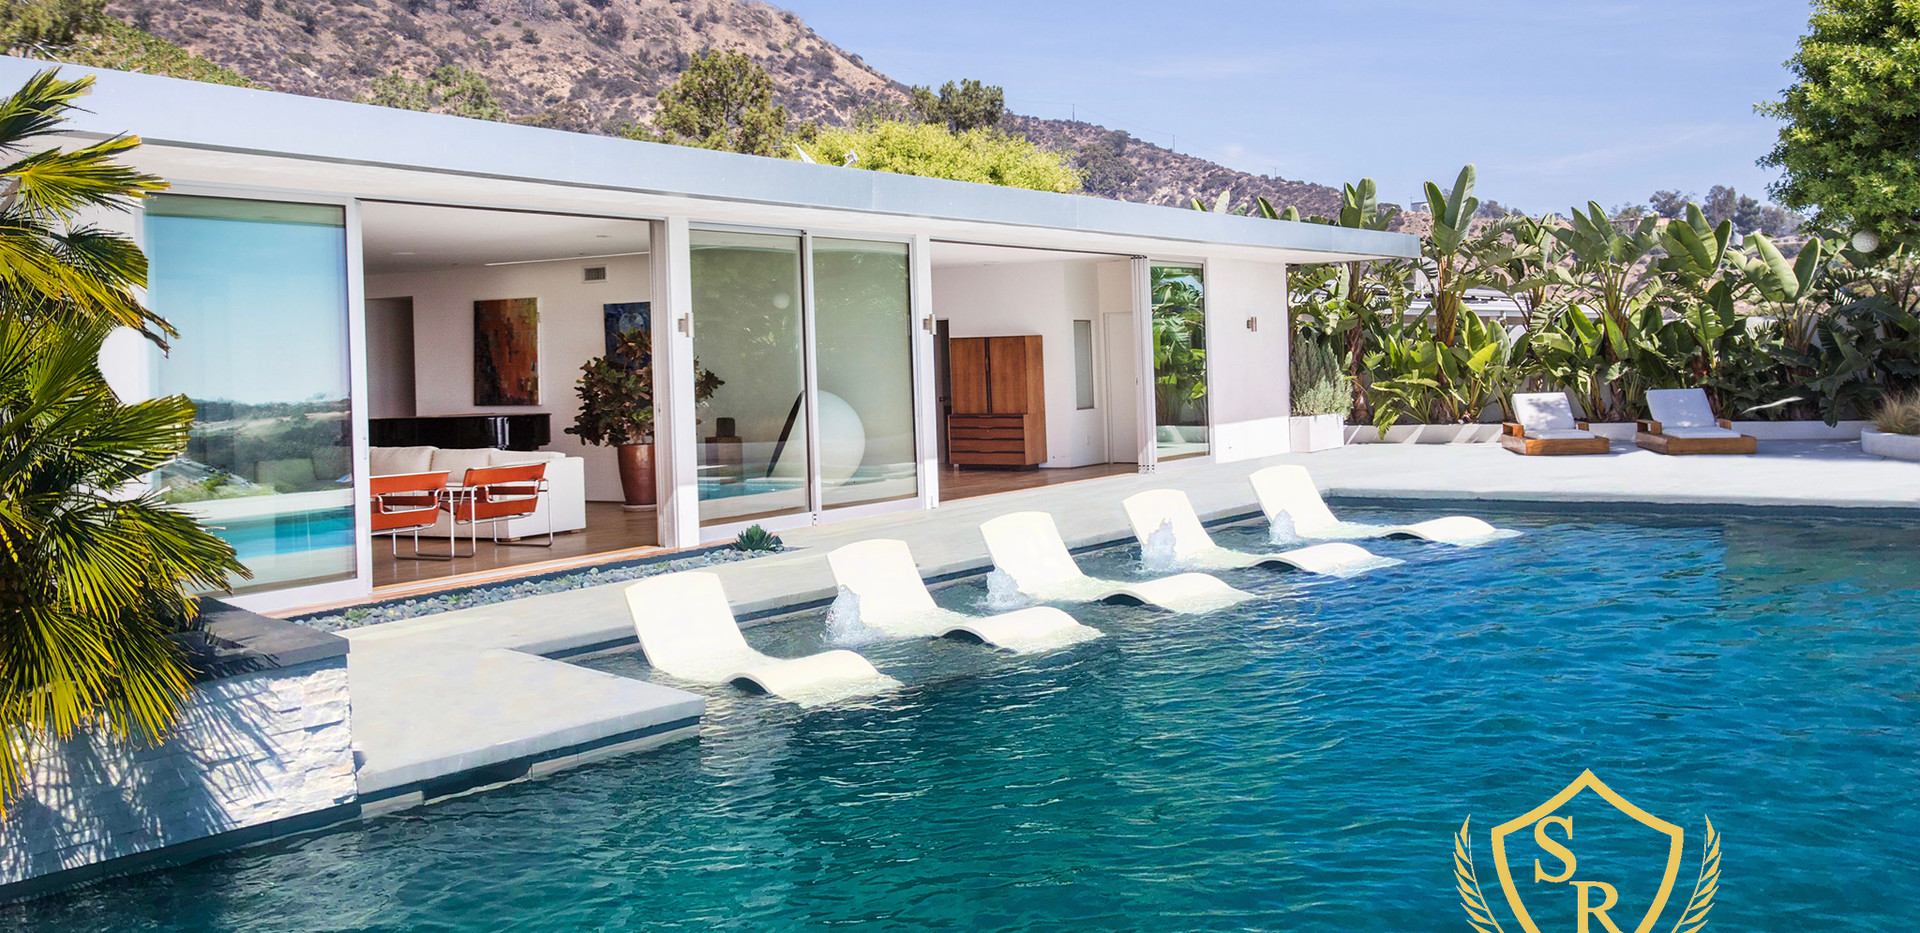 Beverly Hills House with The Curve